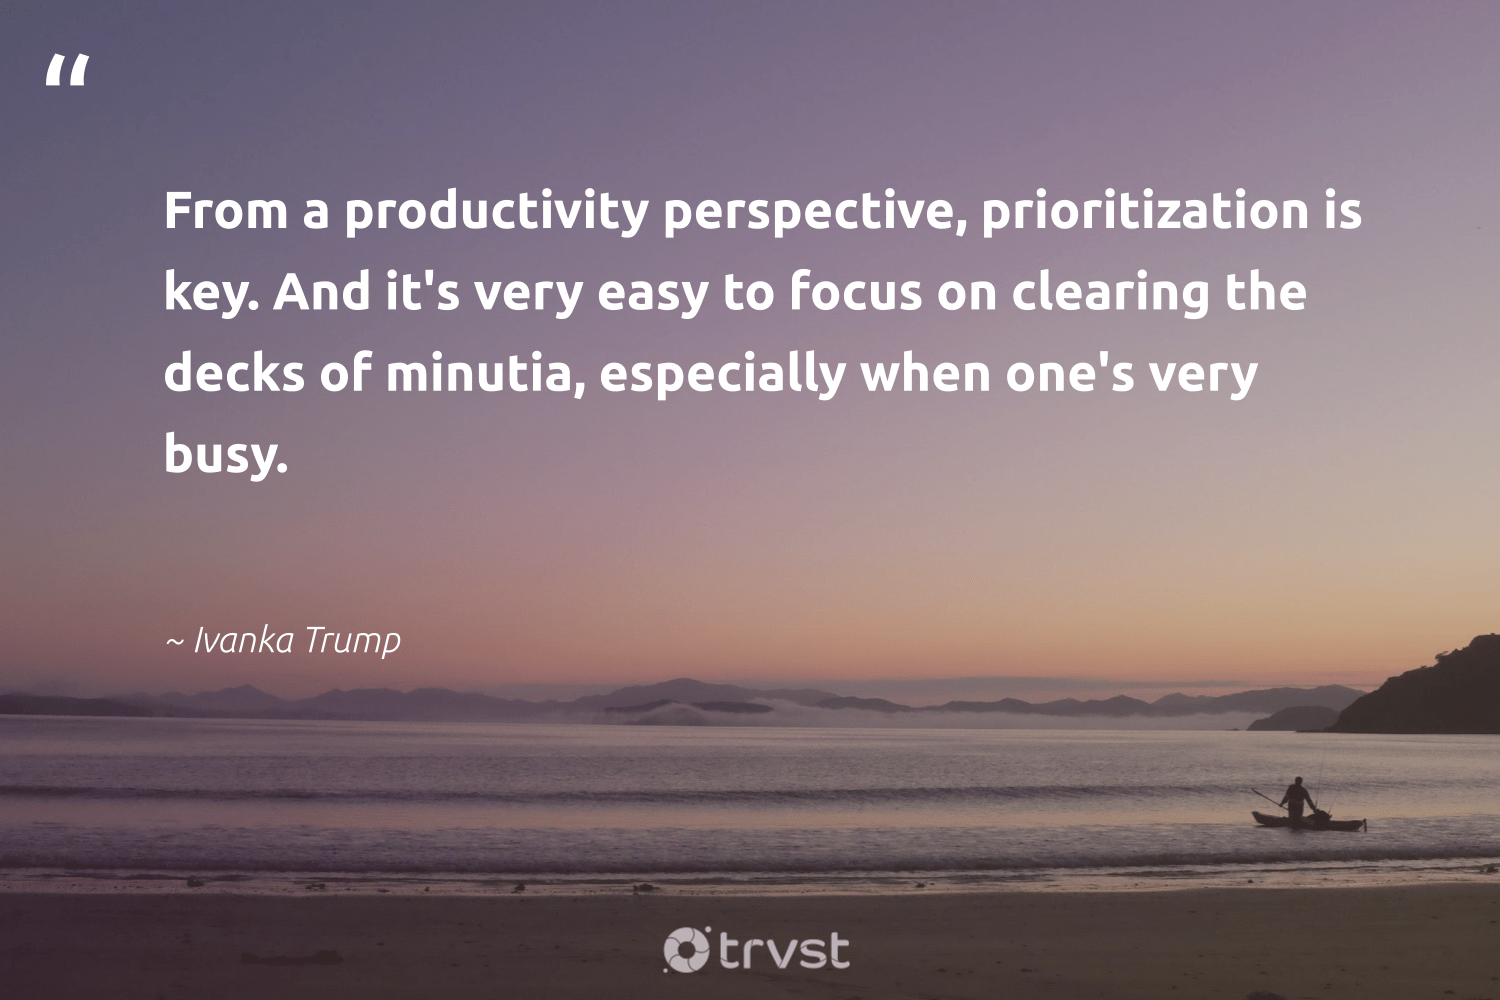 """""""From a productivity perspective, prioritization is key. And it's very easy to focus on clearing the decks of minutia, especially when one's very busy.""""  - Ivanka Trump #trvst #quotes #productivity #focus #motivation #timemanagement #development #begreat #impact #motivational #mostwontiwill #efficiencies"""